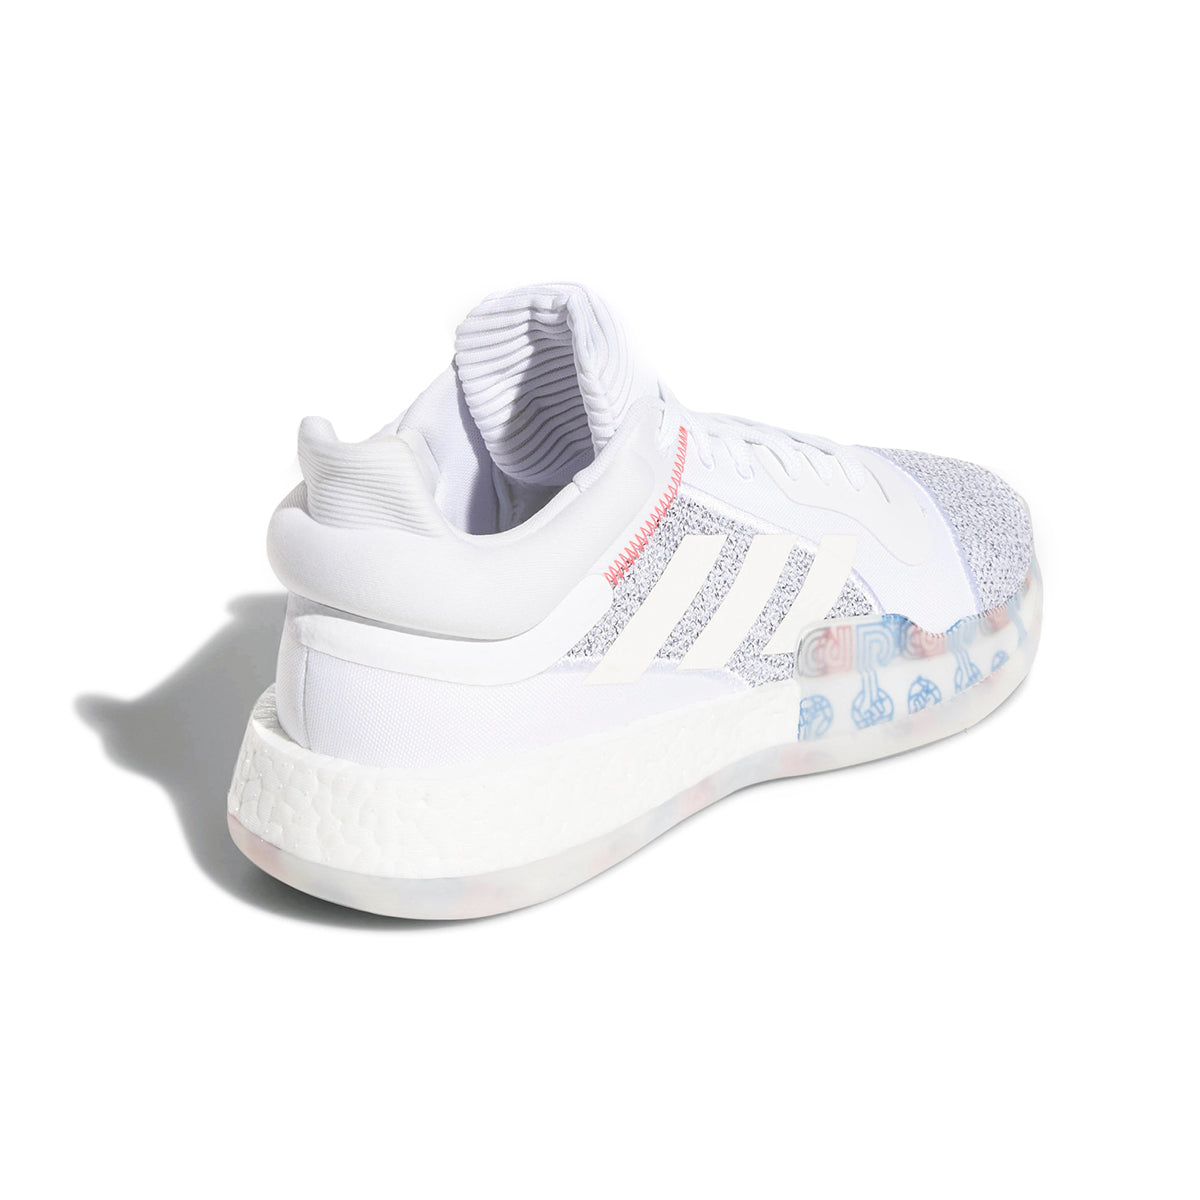 adidas Marquee Boost Low (White Off White Shocya) 6faf53f90